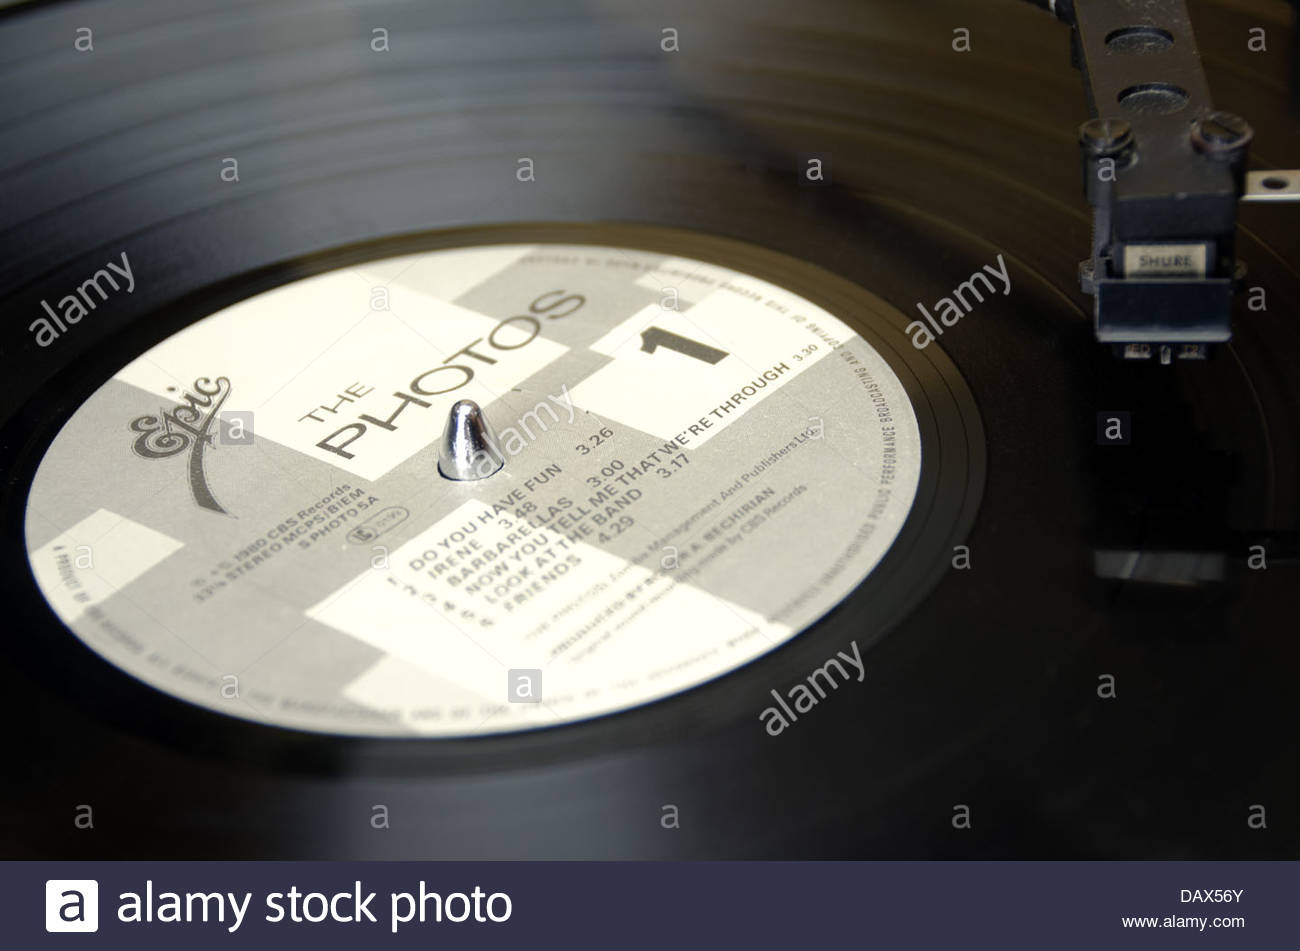 80 Inch Stock Photos & 80 Inch Stock Images - Page 2 - Alamy